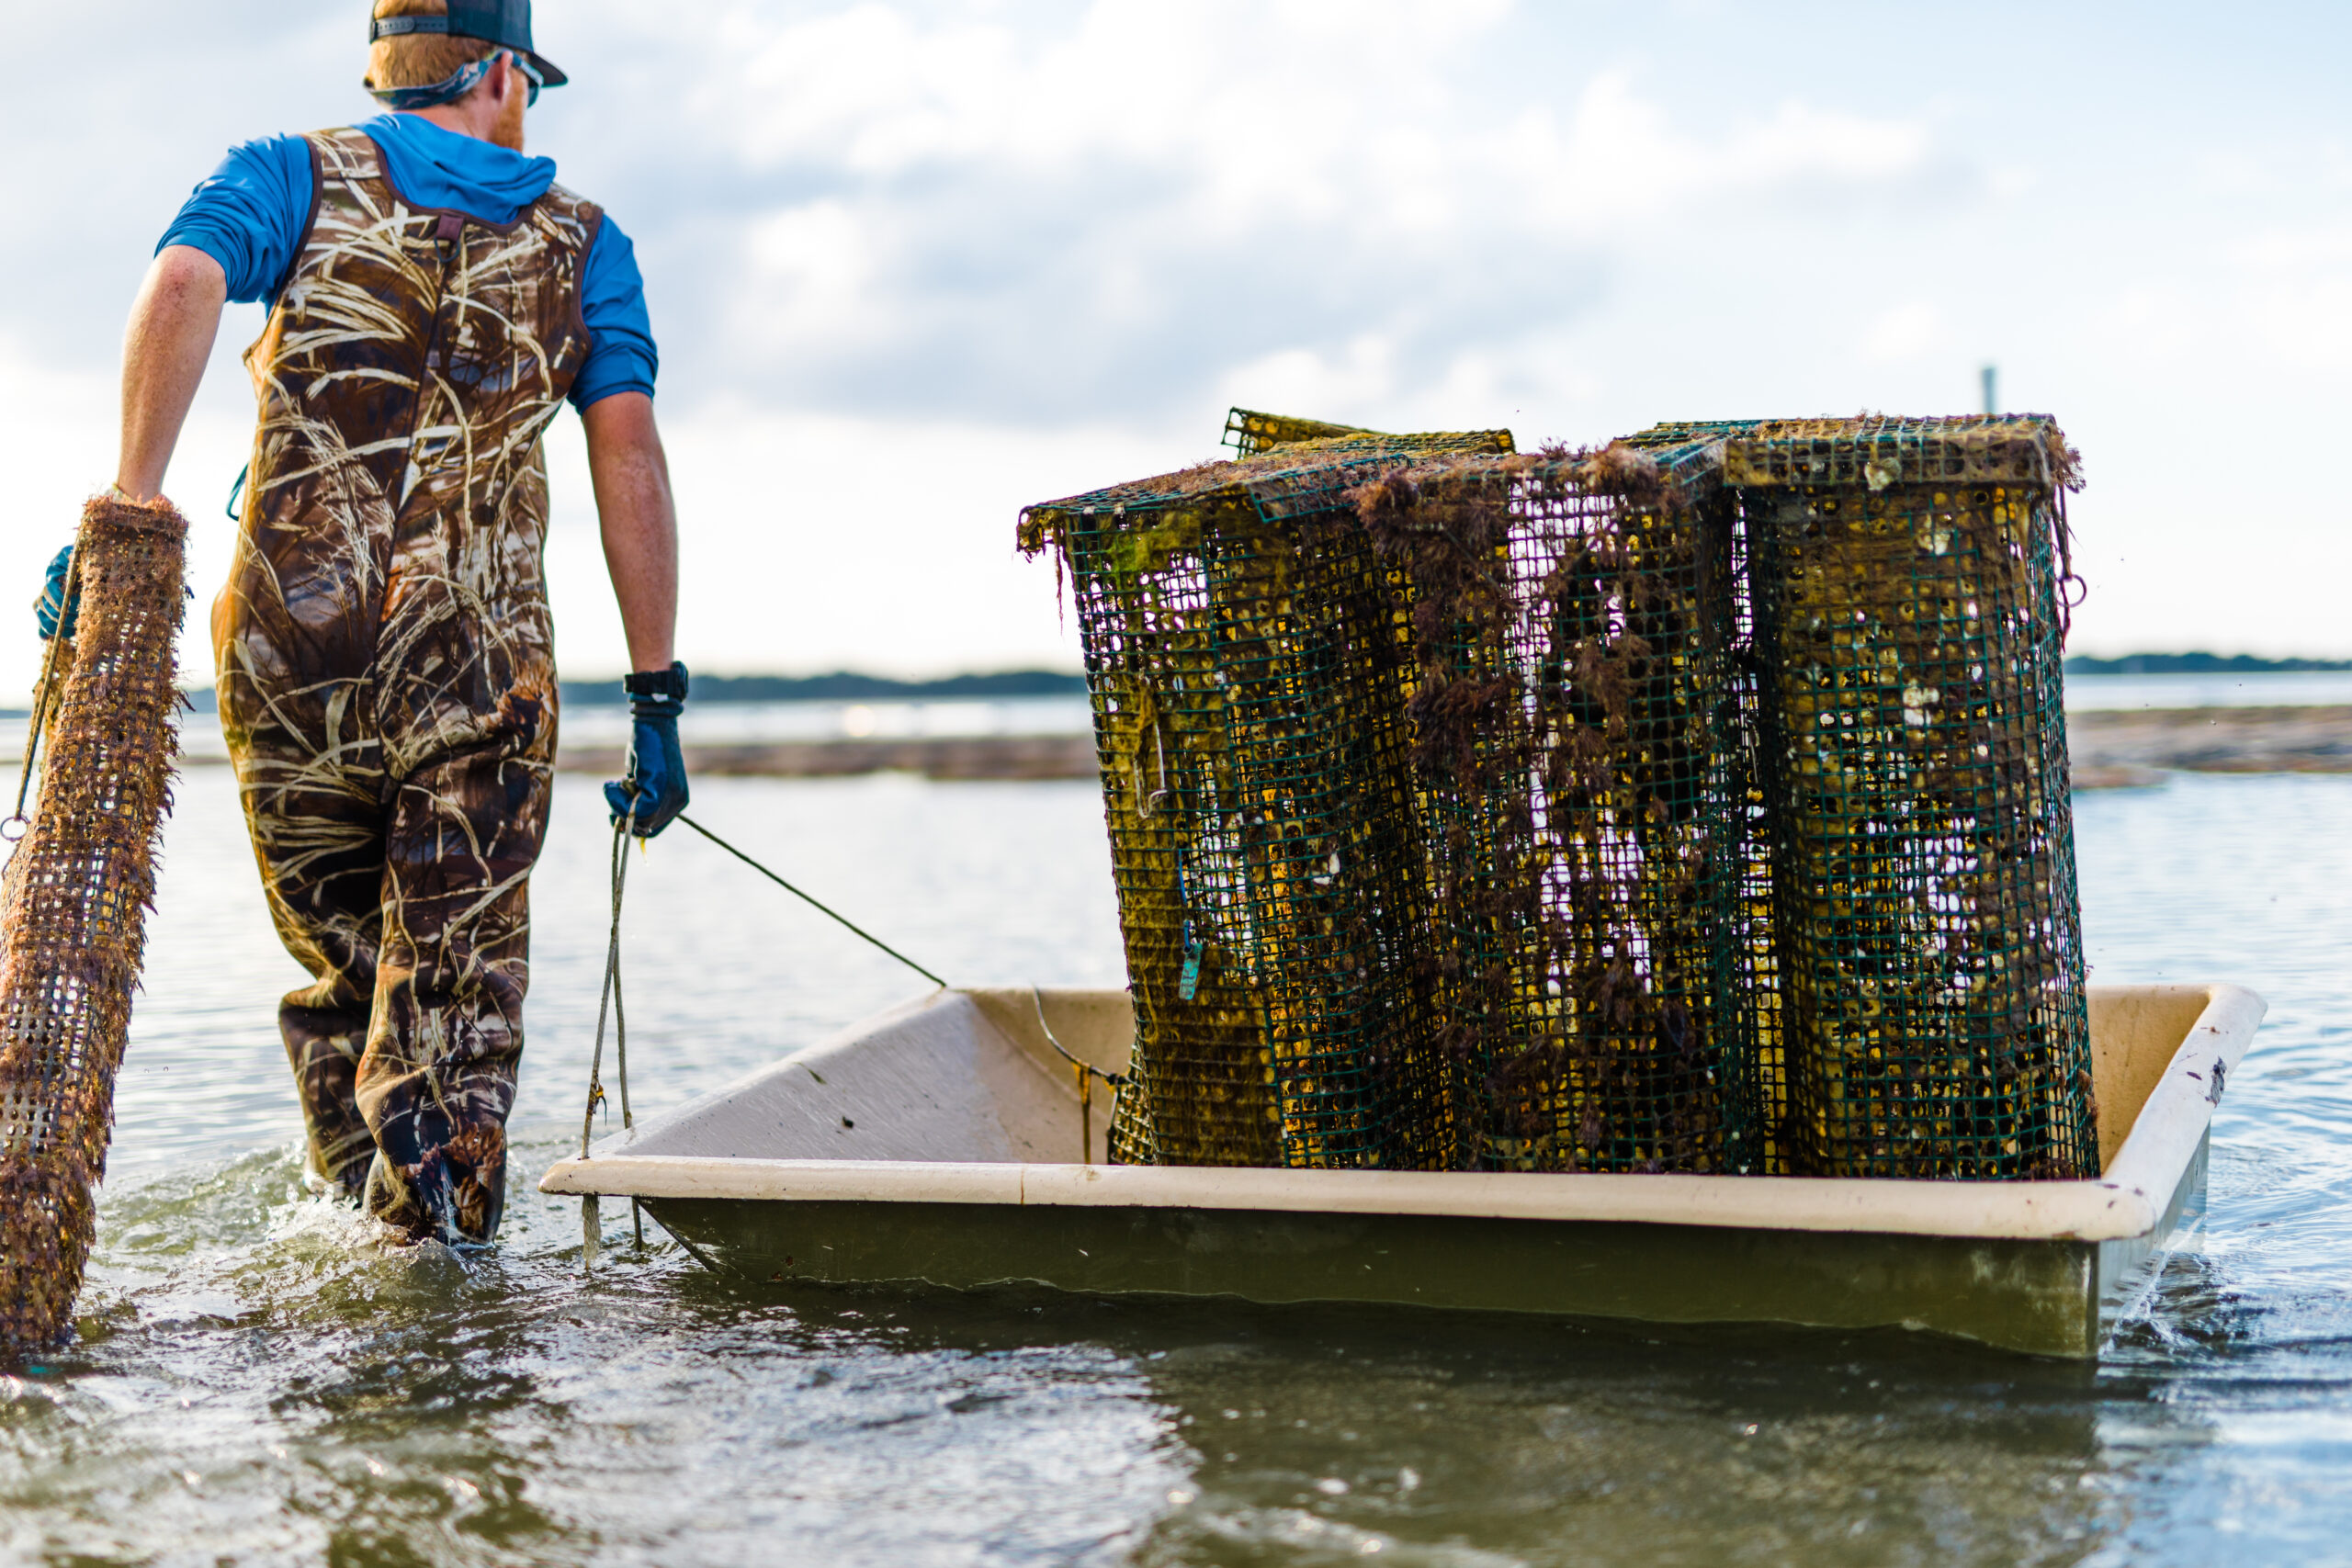 A man pulling a boat with oyster cages in it